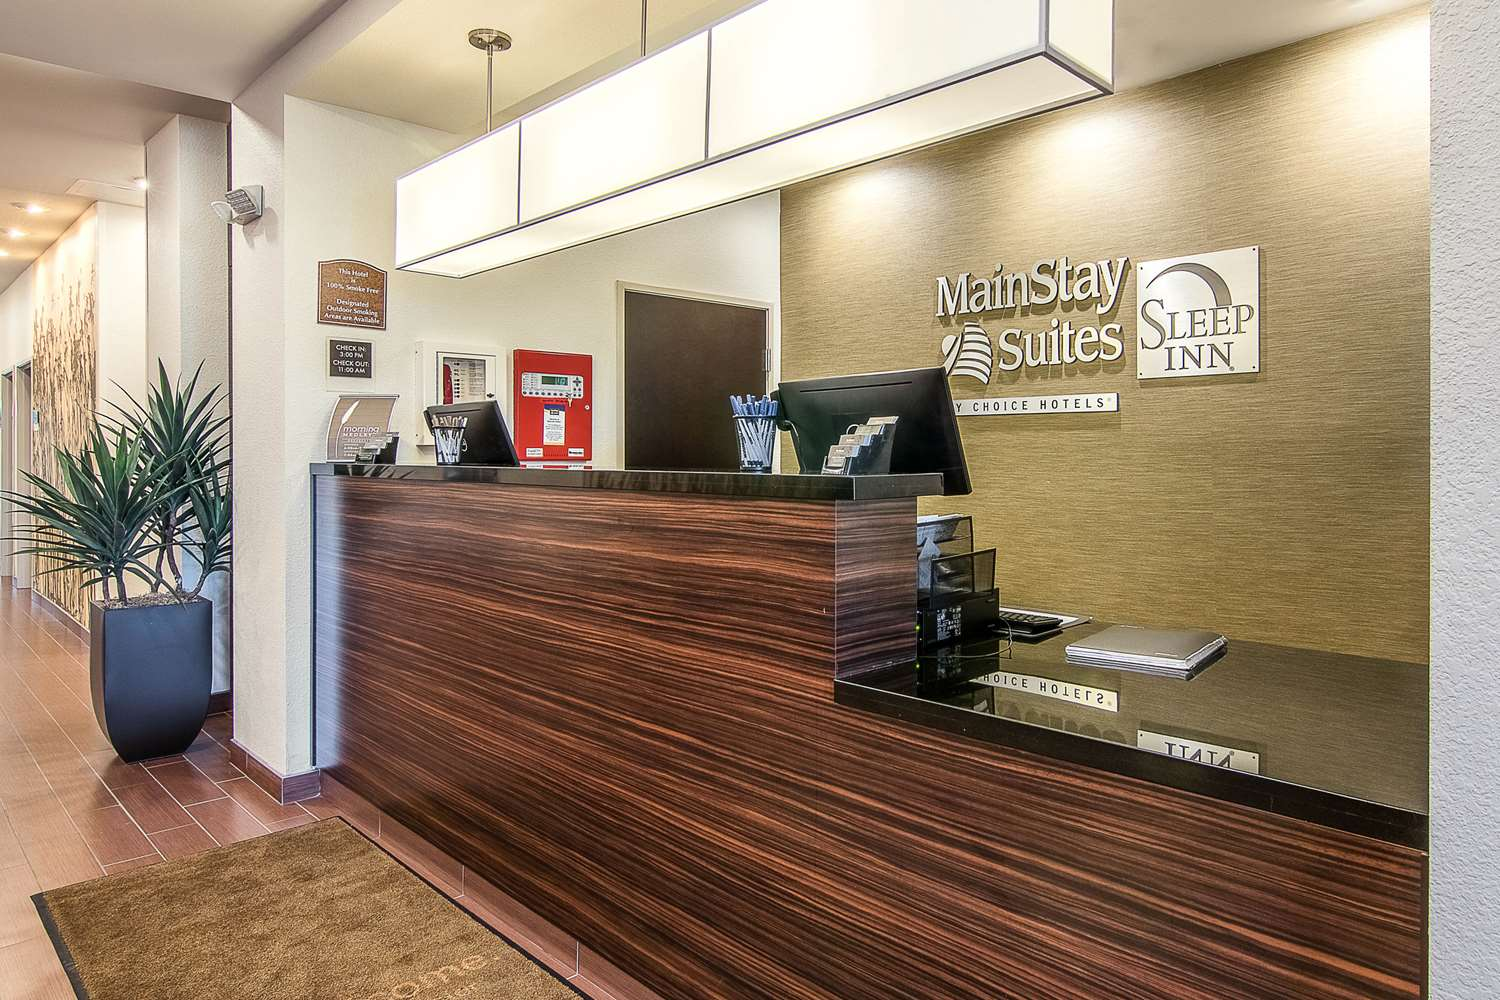 Lobby - Mainstay Suites Rochester